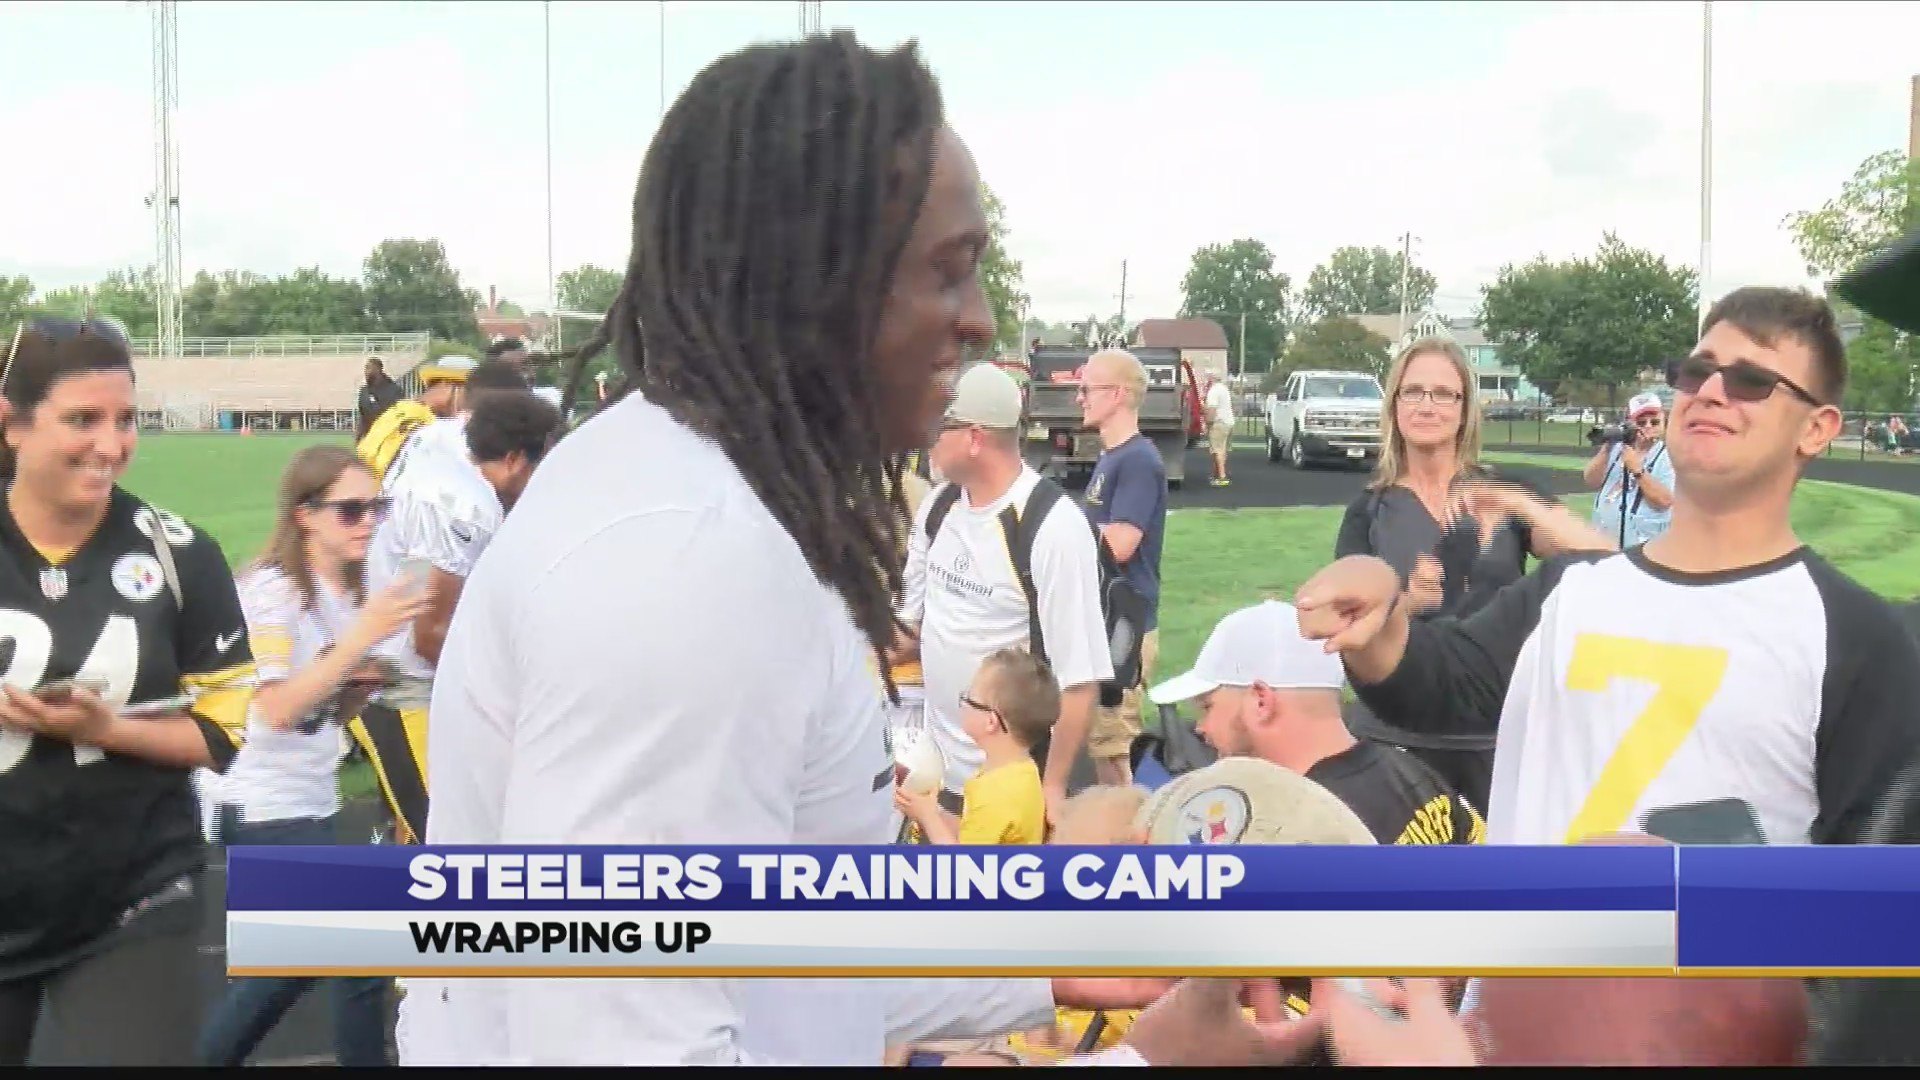 TERRELL EDMUNDS STEELERS HAS BEEN EVERYTHING